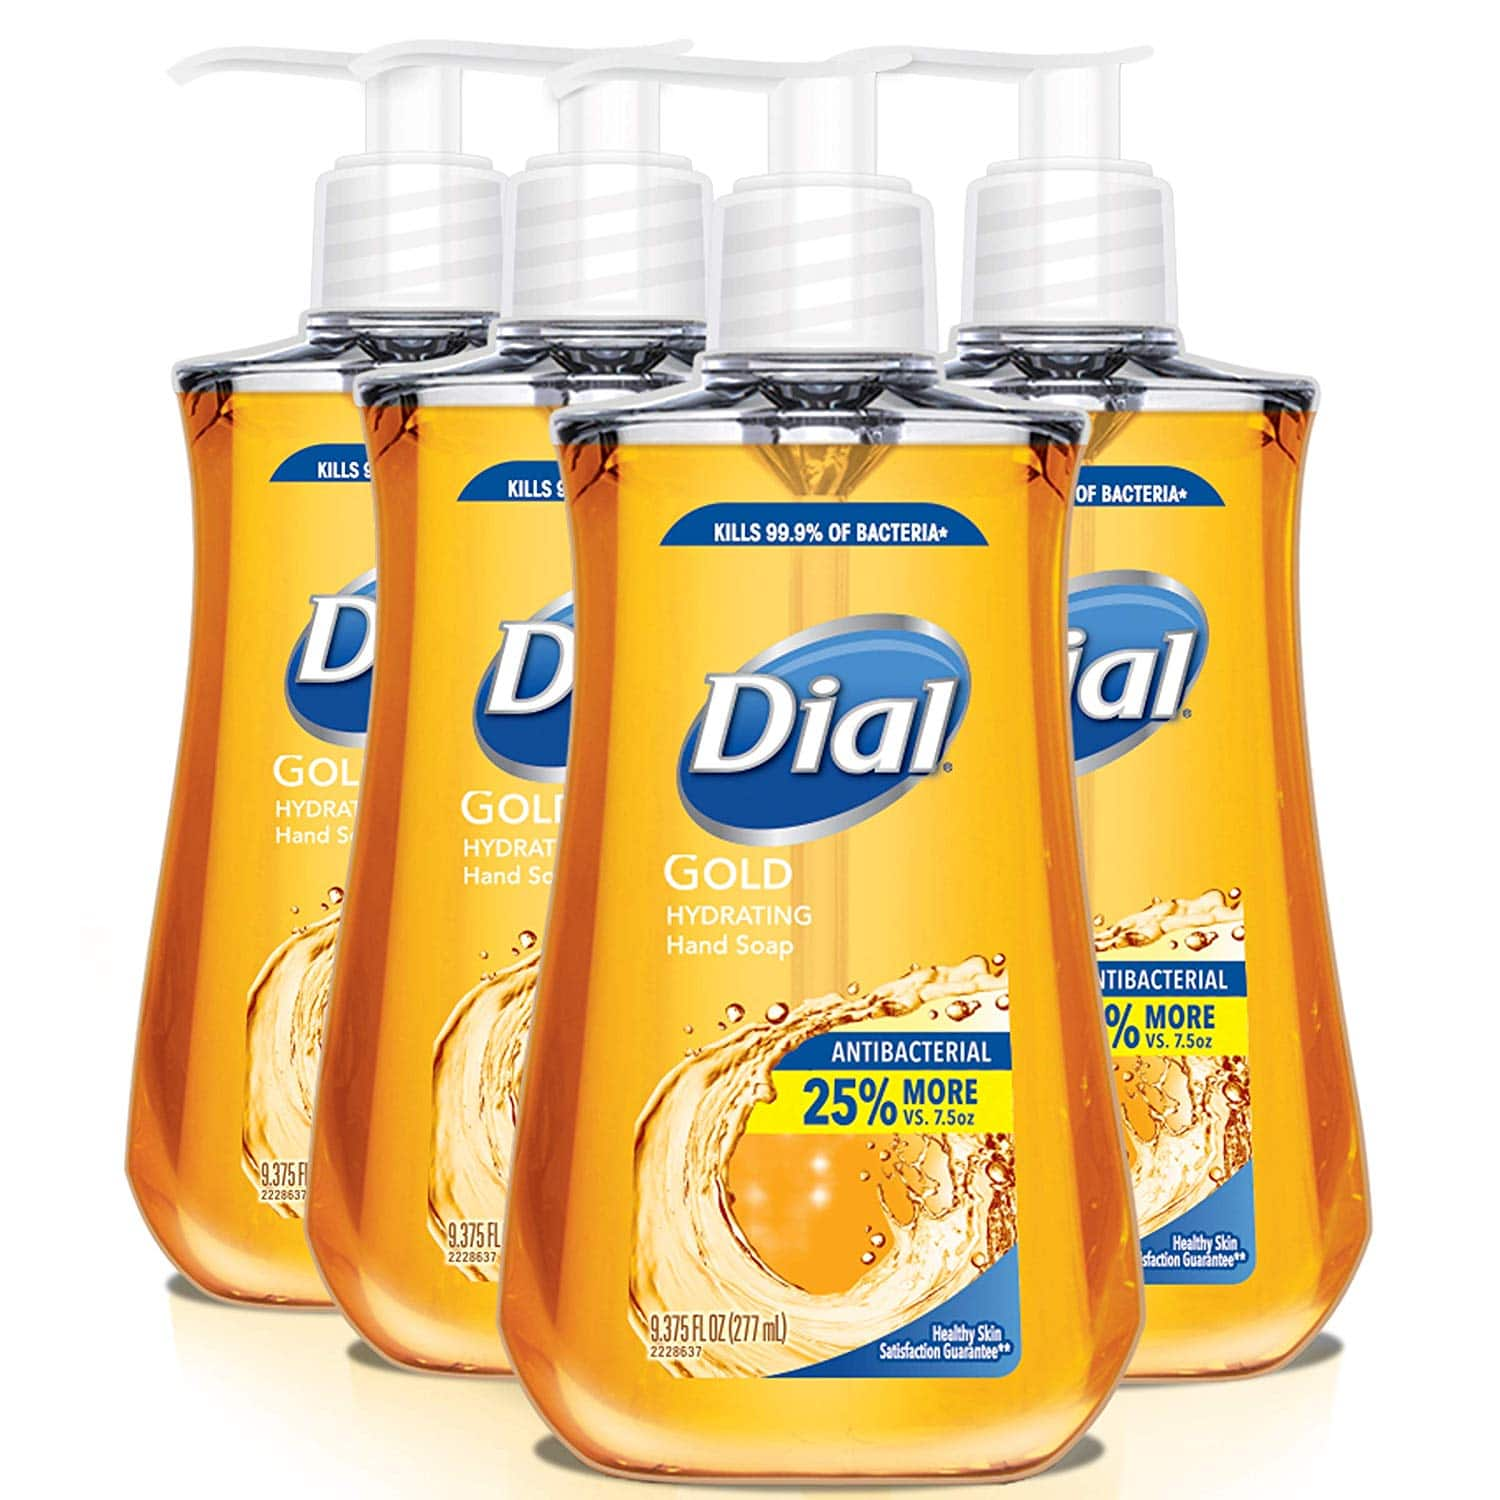 Dial Antibacterial Liquid Hand Soap, Gold, 9-oz (Count of 4) - $4.22 at Amazon with subscribe and save